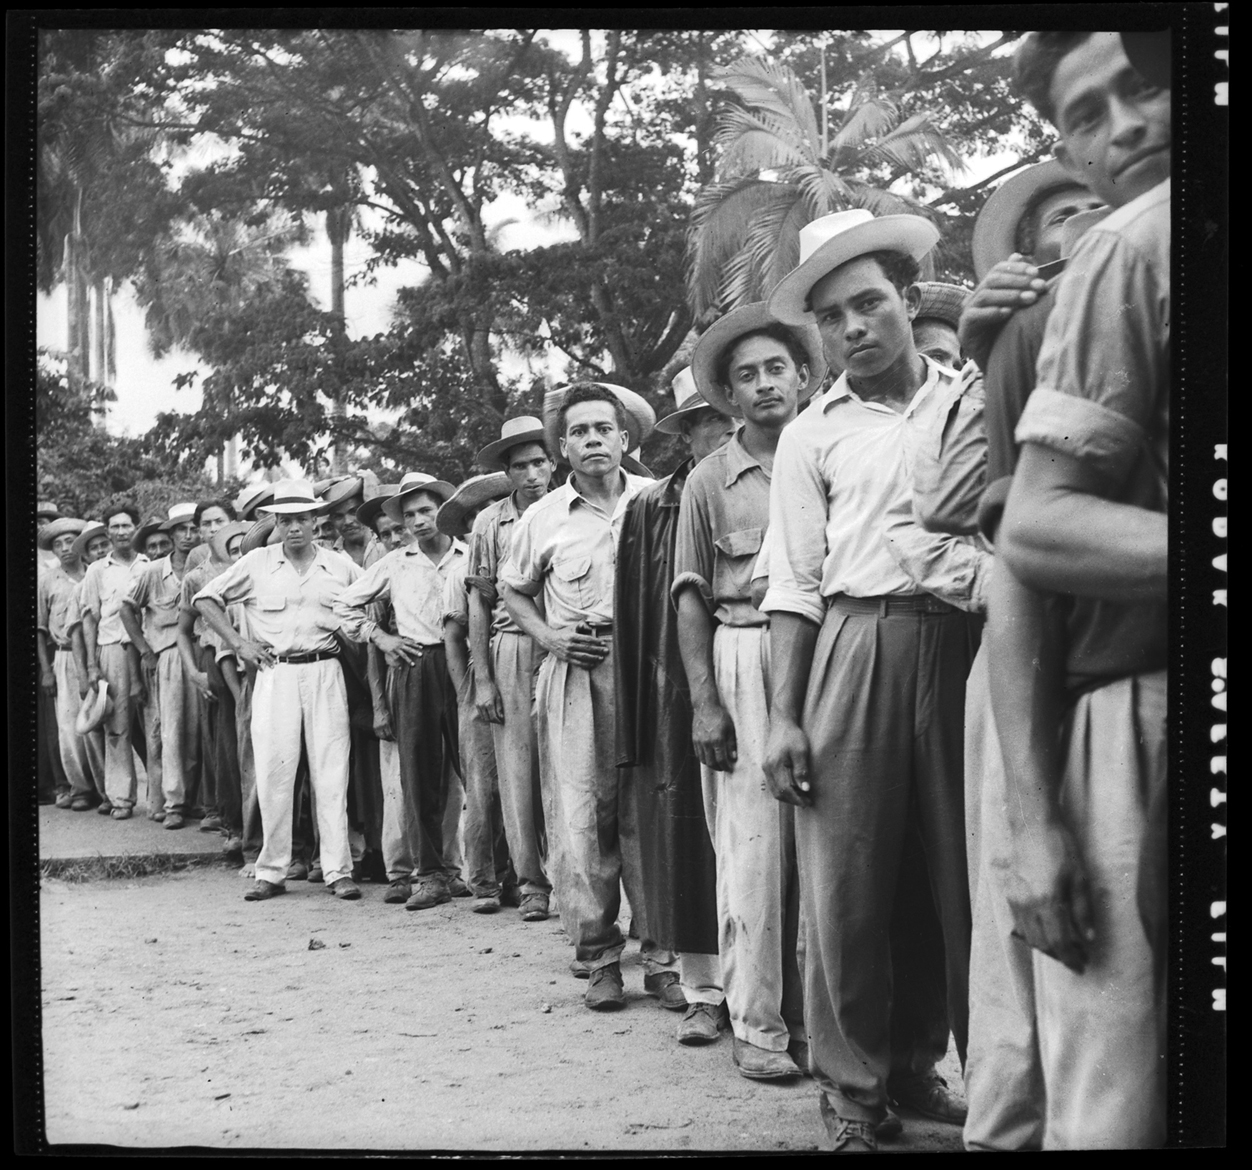 Banana workers on strike in 1954. El Progreso, Honduras. Photograph by Rafael Platero Paz